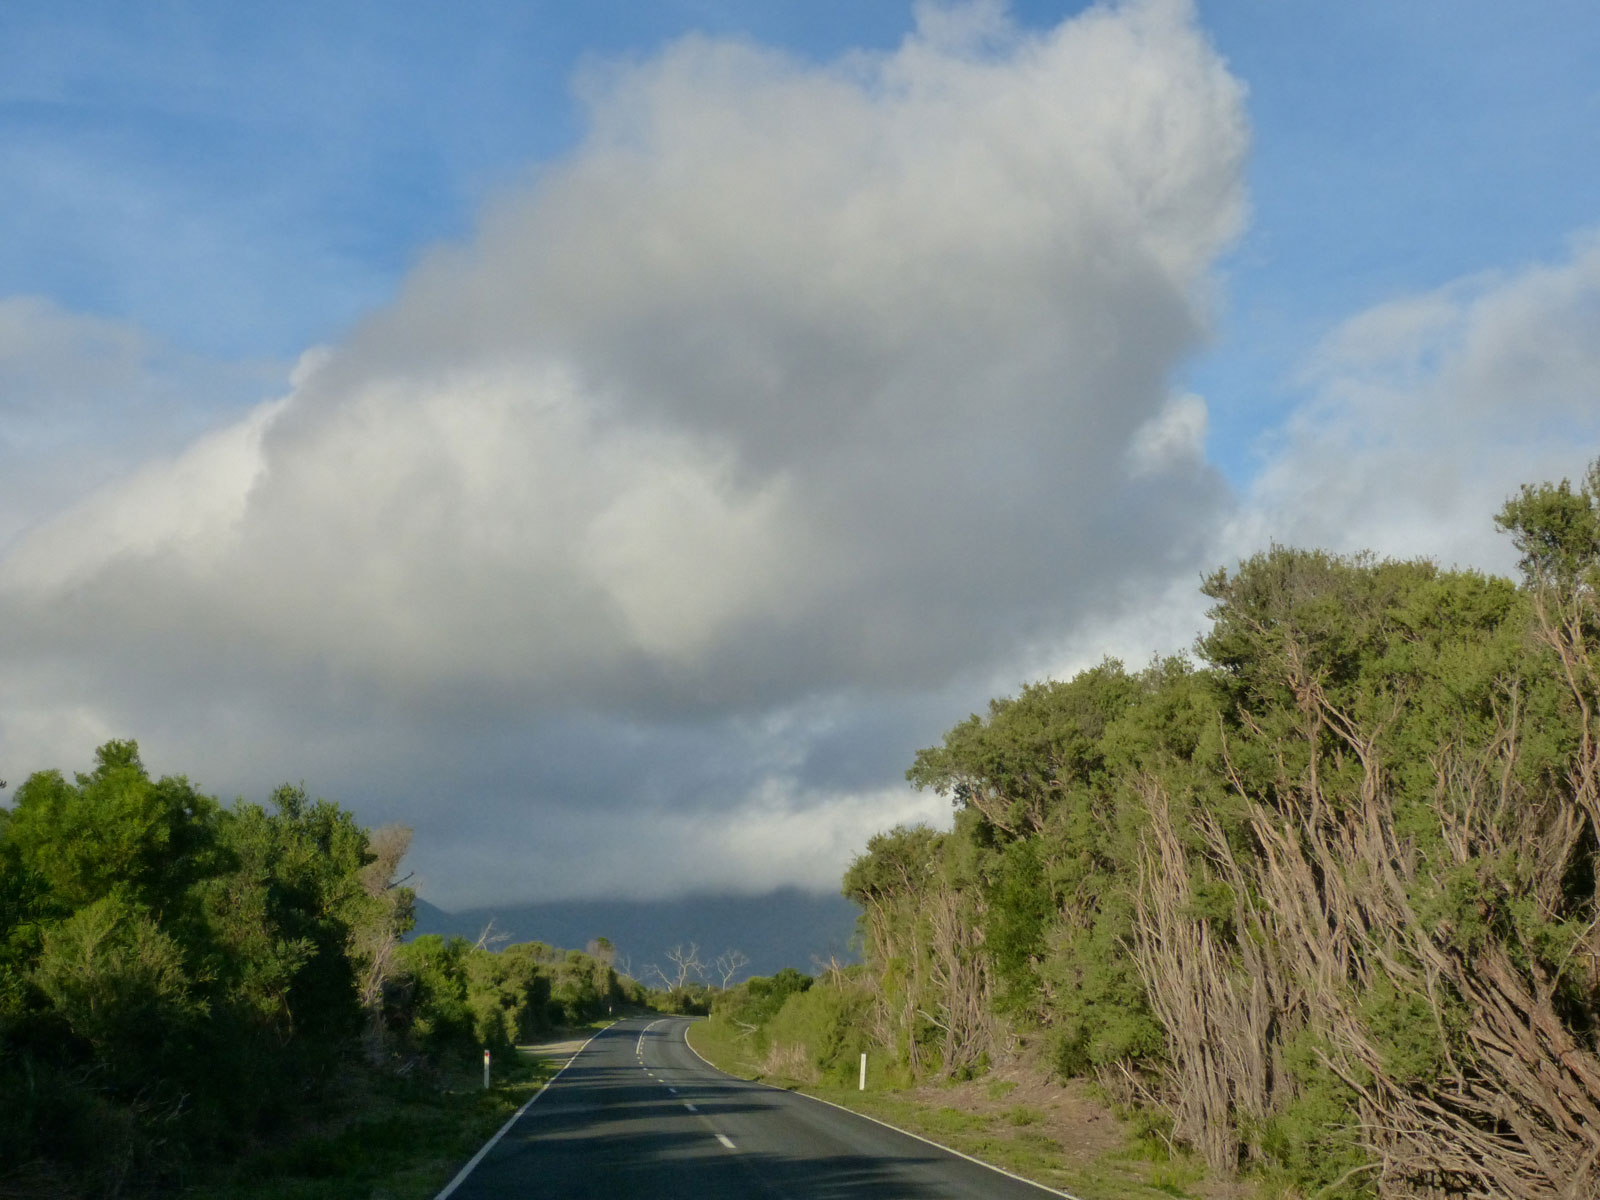 On the way to Tidal River